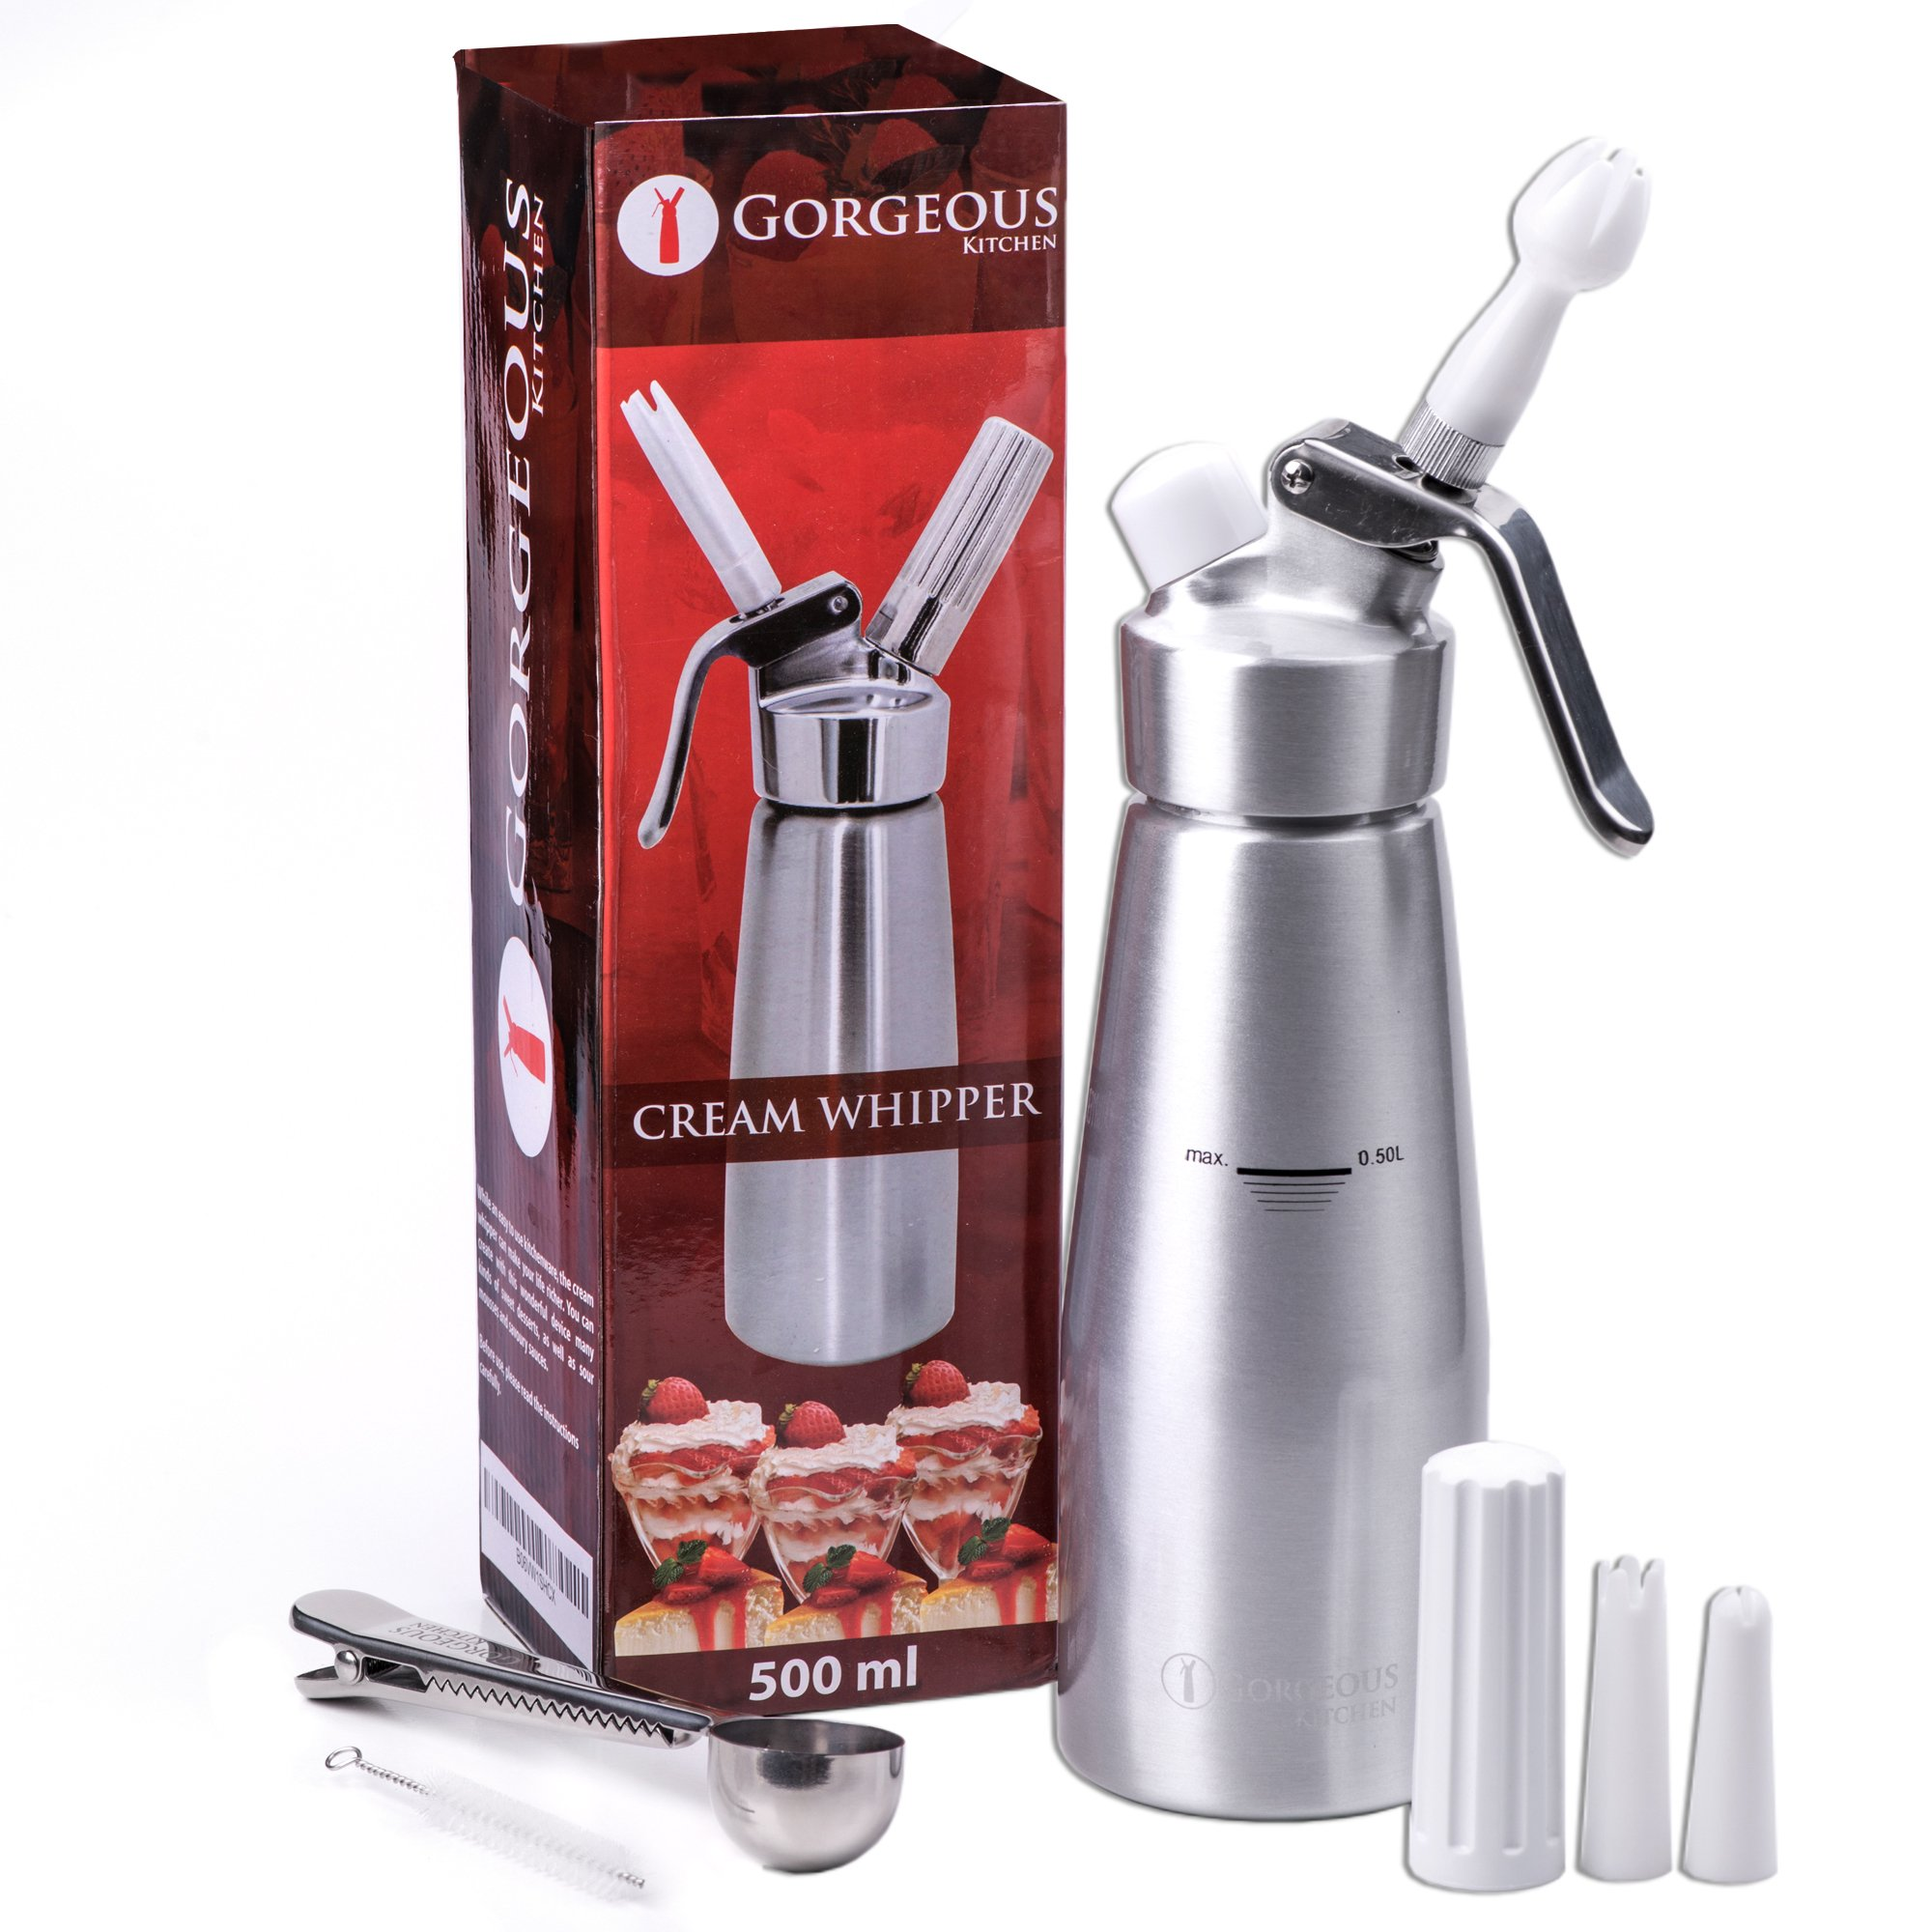 Professional Whipped Cream Dispenser Aluminum Cream Whipper, Durable Stainless Steel Coffee Spoon, 3 Decorating Nozzles, Charger Holder, Cleaning Brush and Instruction Manual Included - 1 Pint